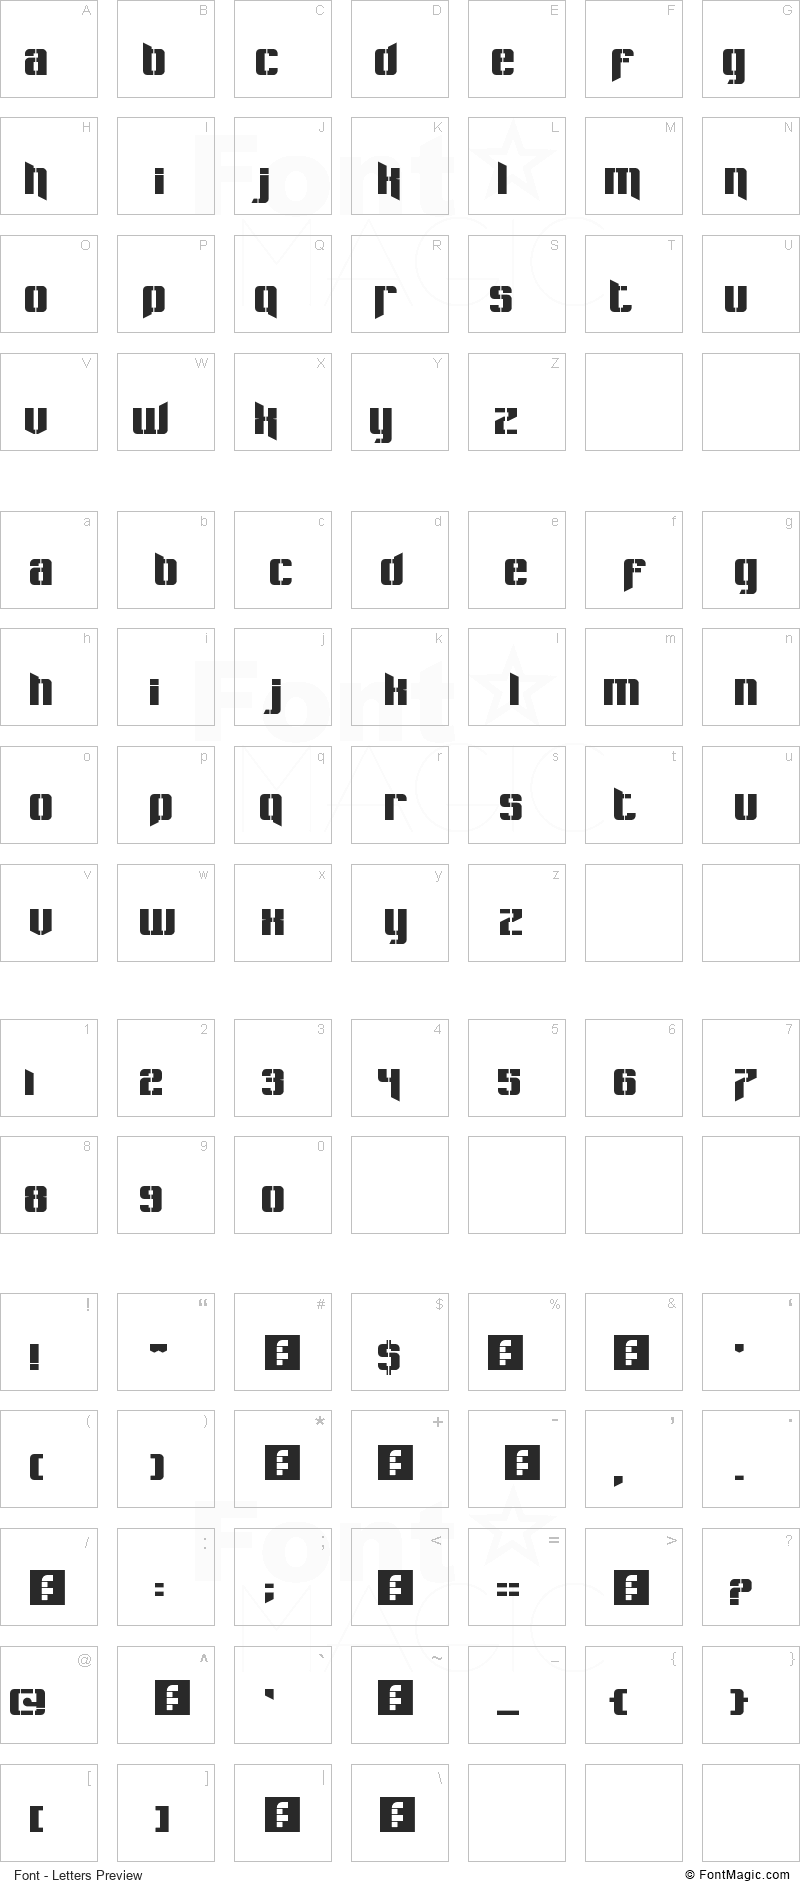 Pastcorps Font - All Latters Preview Chart